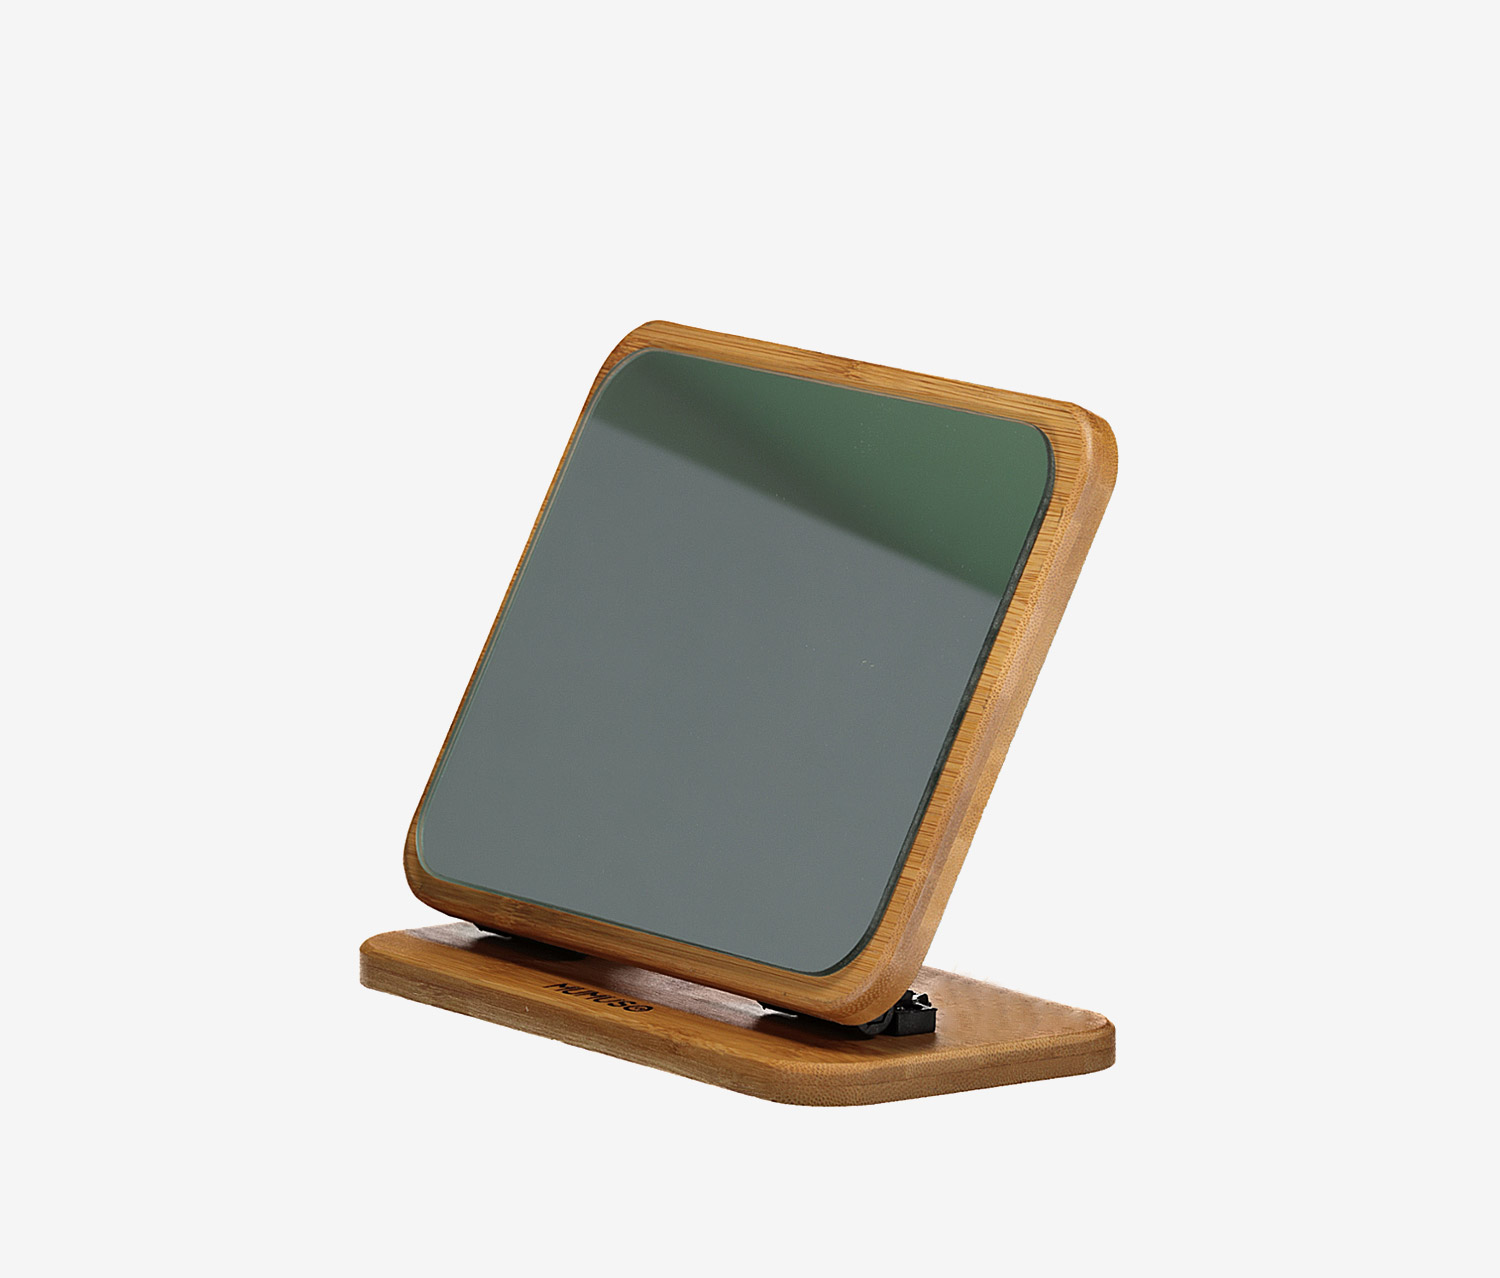 Square Bamboo Desk Mirror, Brown